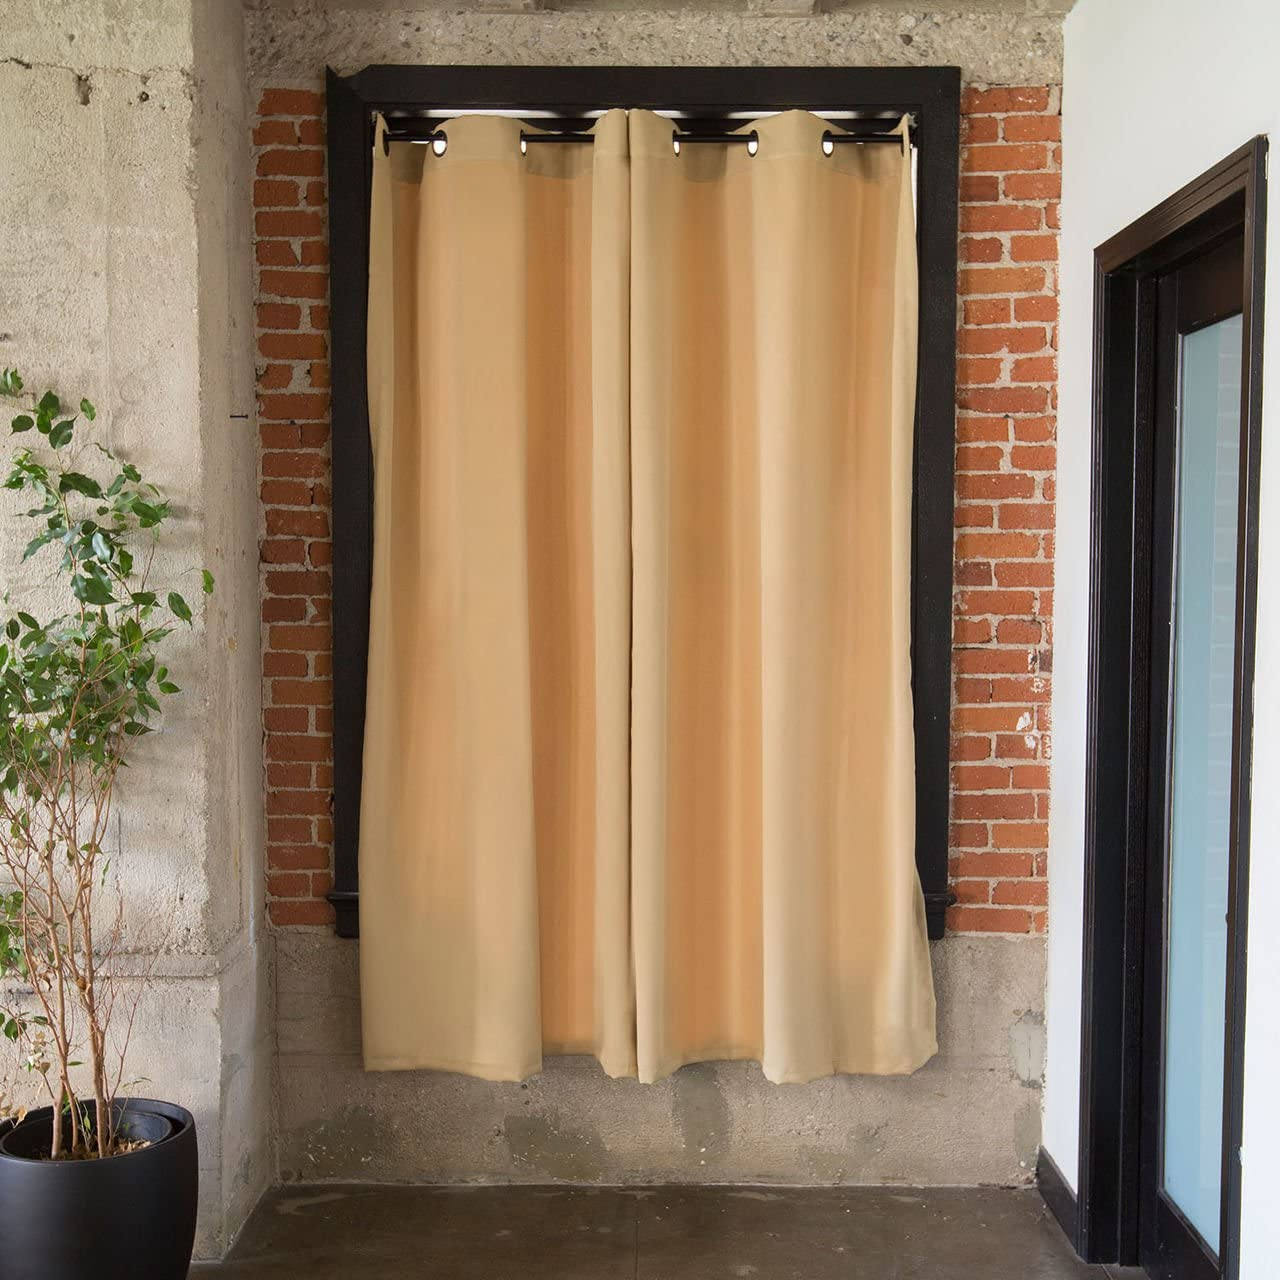 CurtainKitsNow Premium Heavyweight Tension Rod Curtain Kit – Large C, Includes Two Wheat 96 x 50 Wide Panels One 80 – 100 Tension Rod